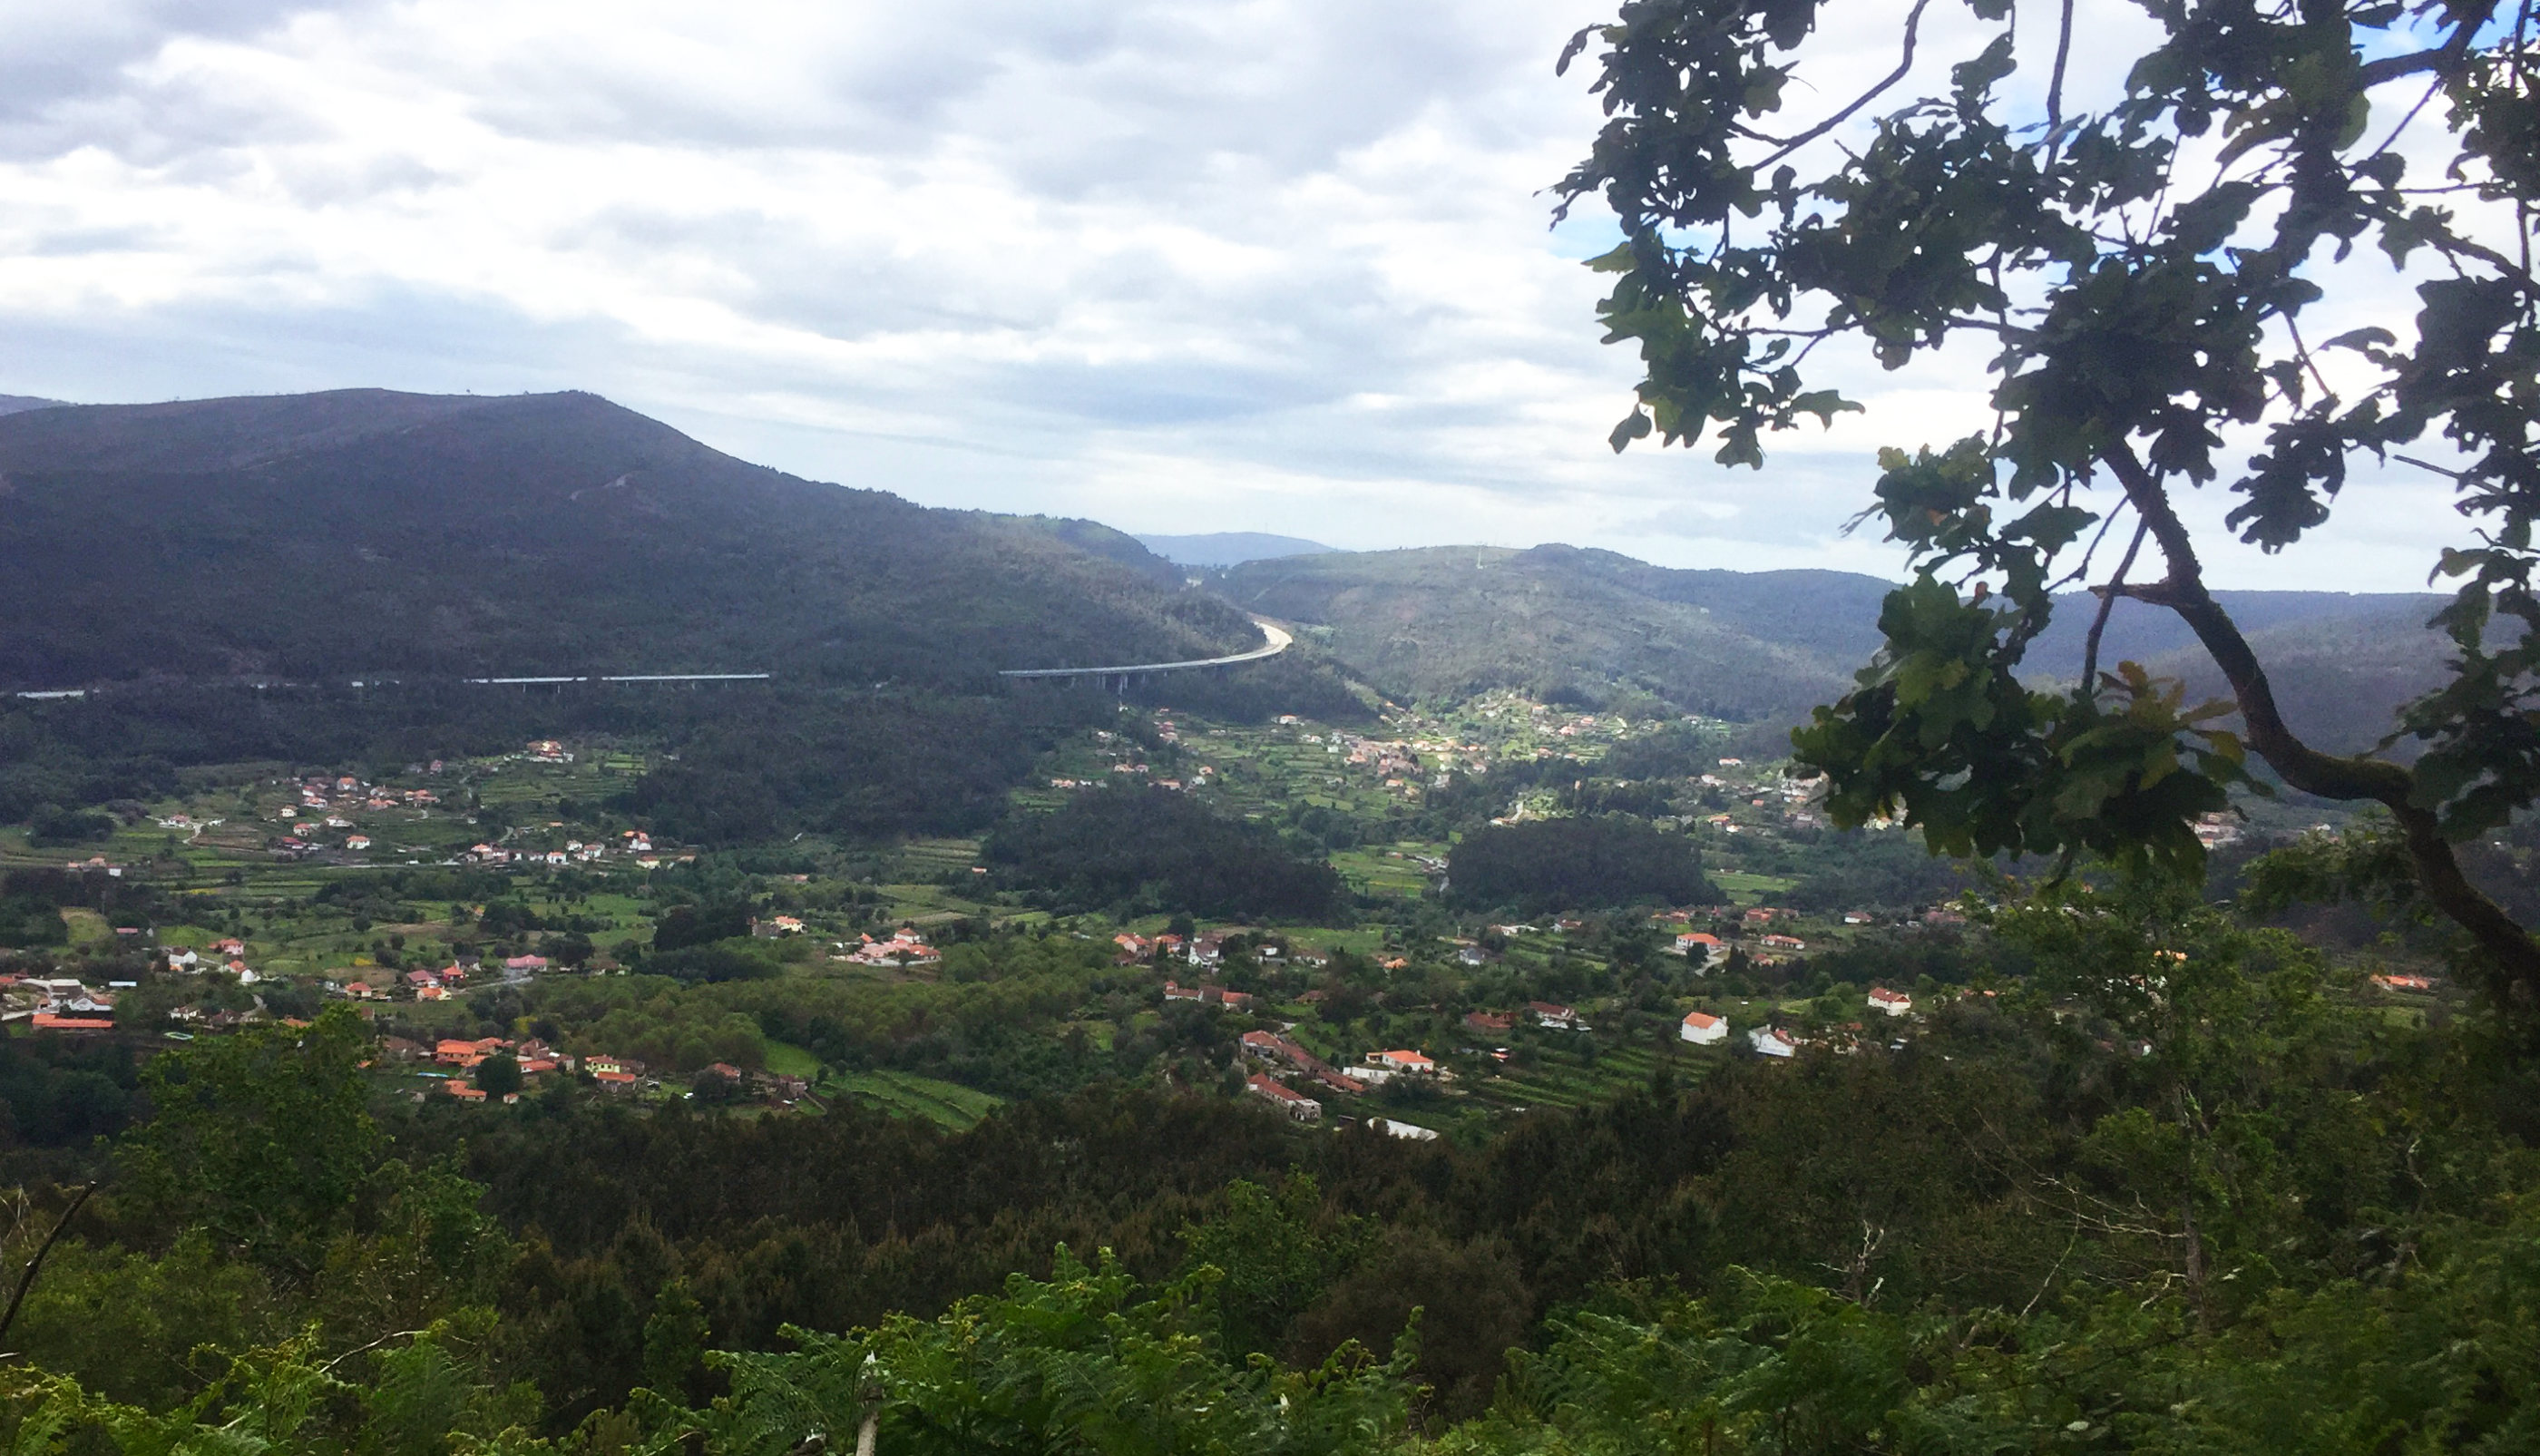 The view to the west from the Run do Alto do Cavalo